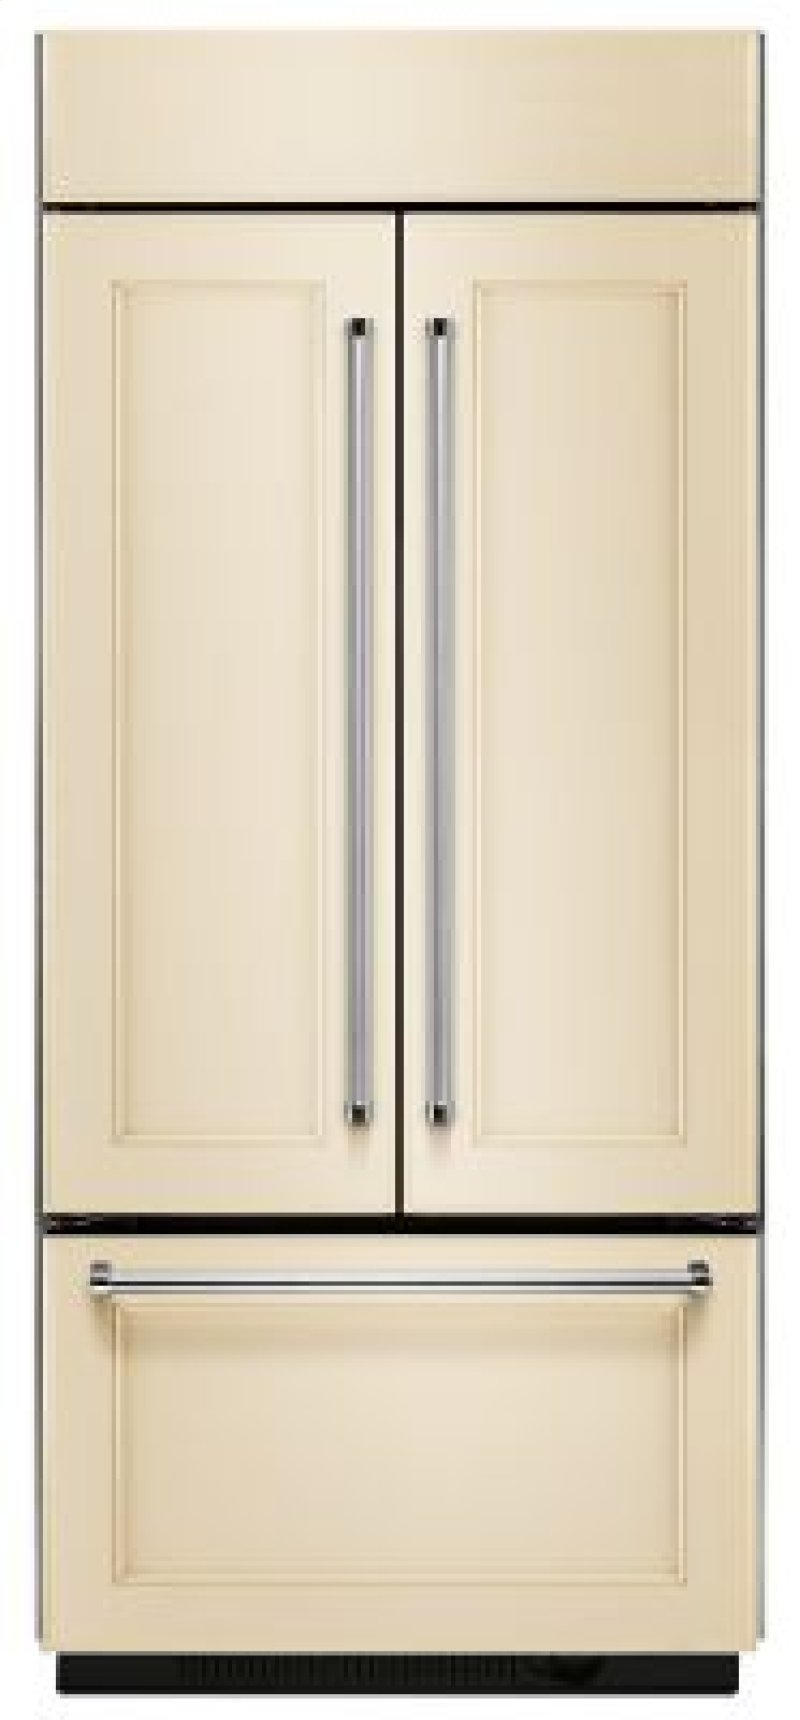 Kbfn506epa In Panel Ready By Kitchenaid In East Providence Ri 20 8 Cu Ft 36 Width Built In